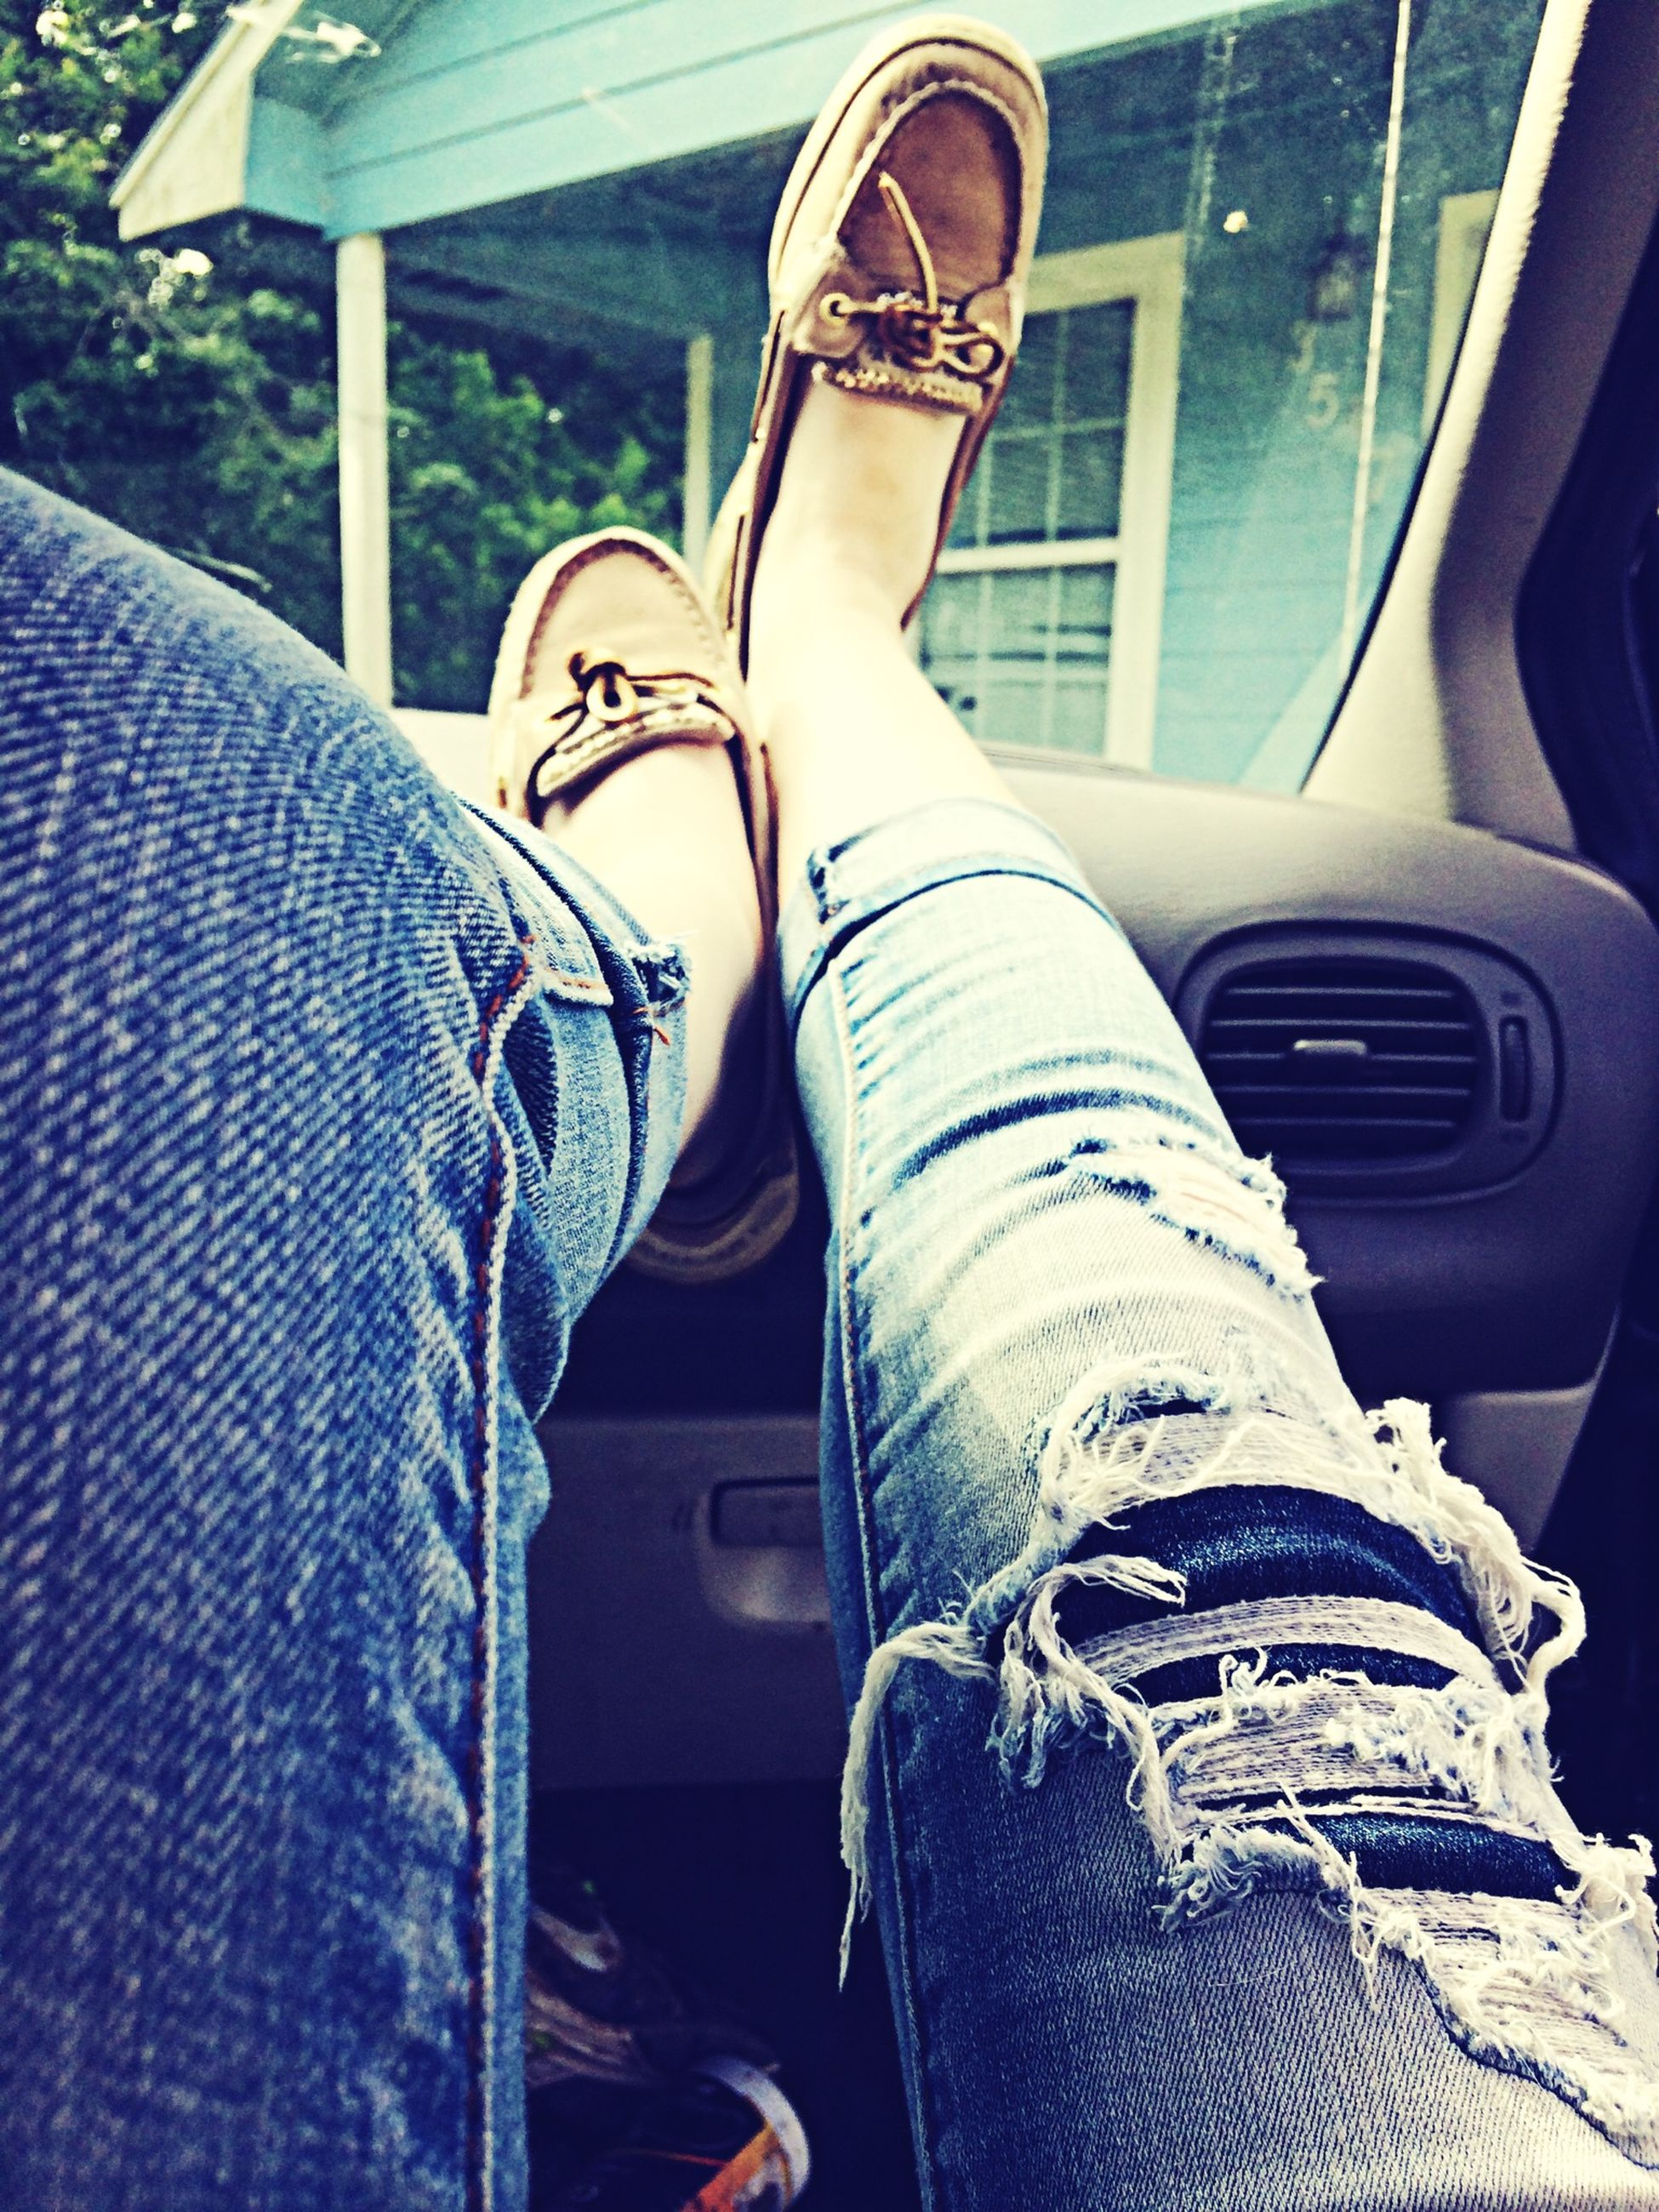 low section, person, shoe, jeans, personal perspective, footwear, human foot, indoors, sitting, canvas shoe, lifestyles, fashion, close-up, standing, legs crossed at ankle, relaxation, denim